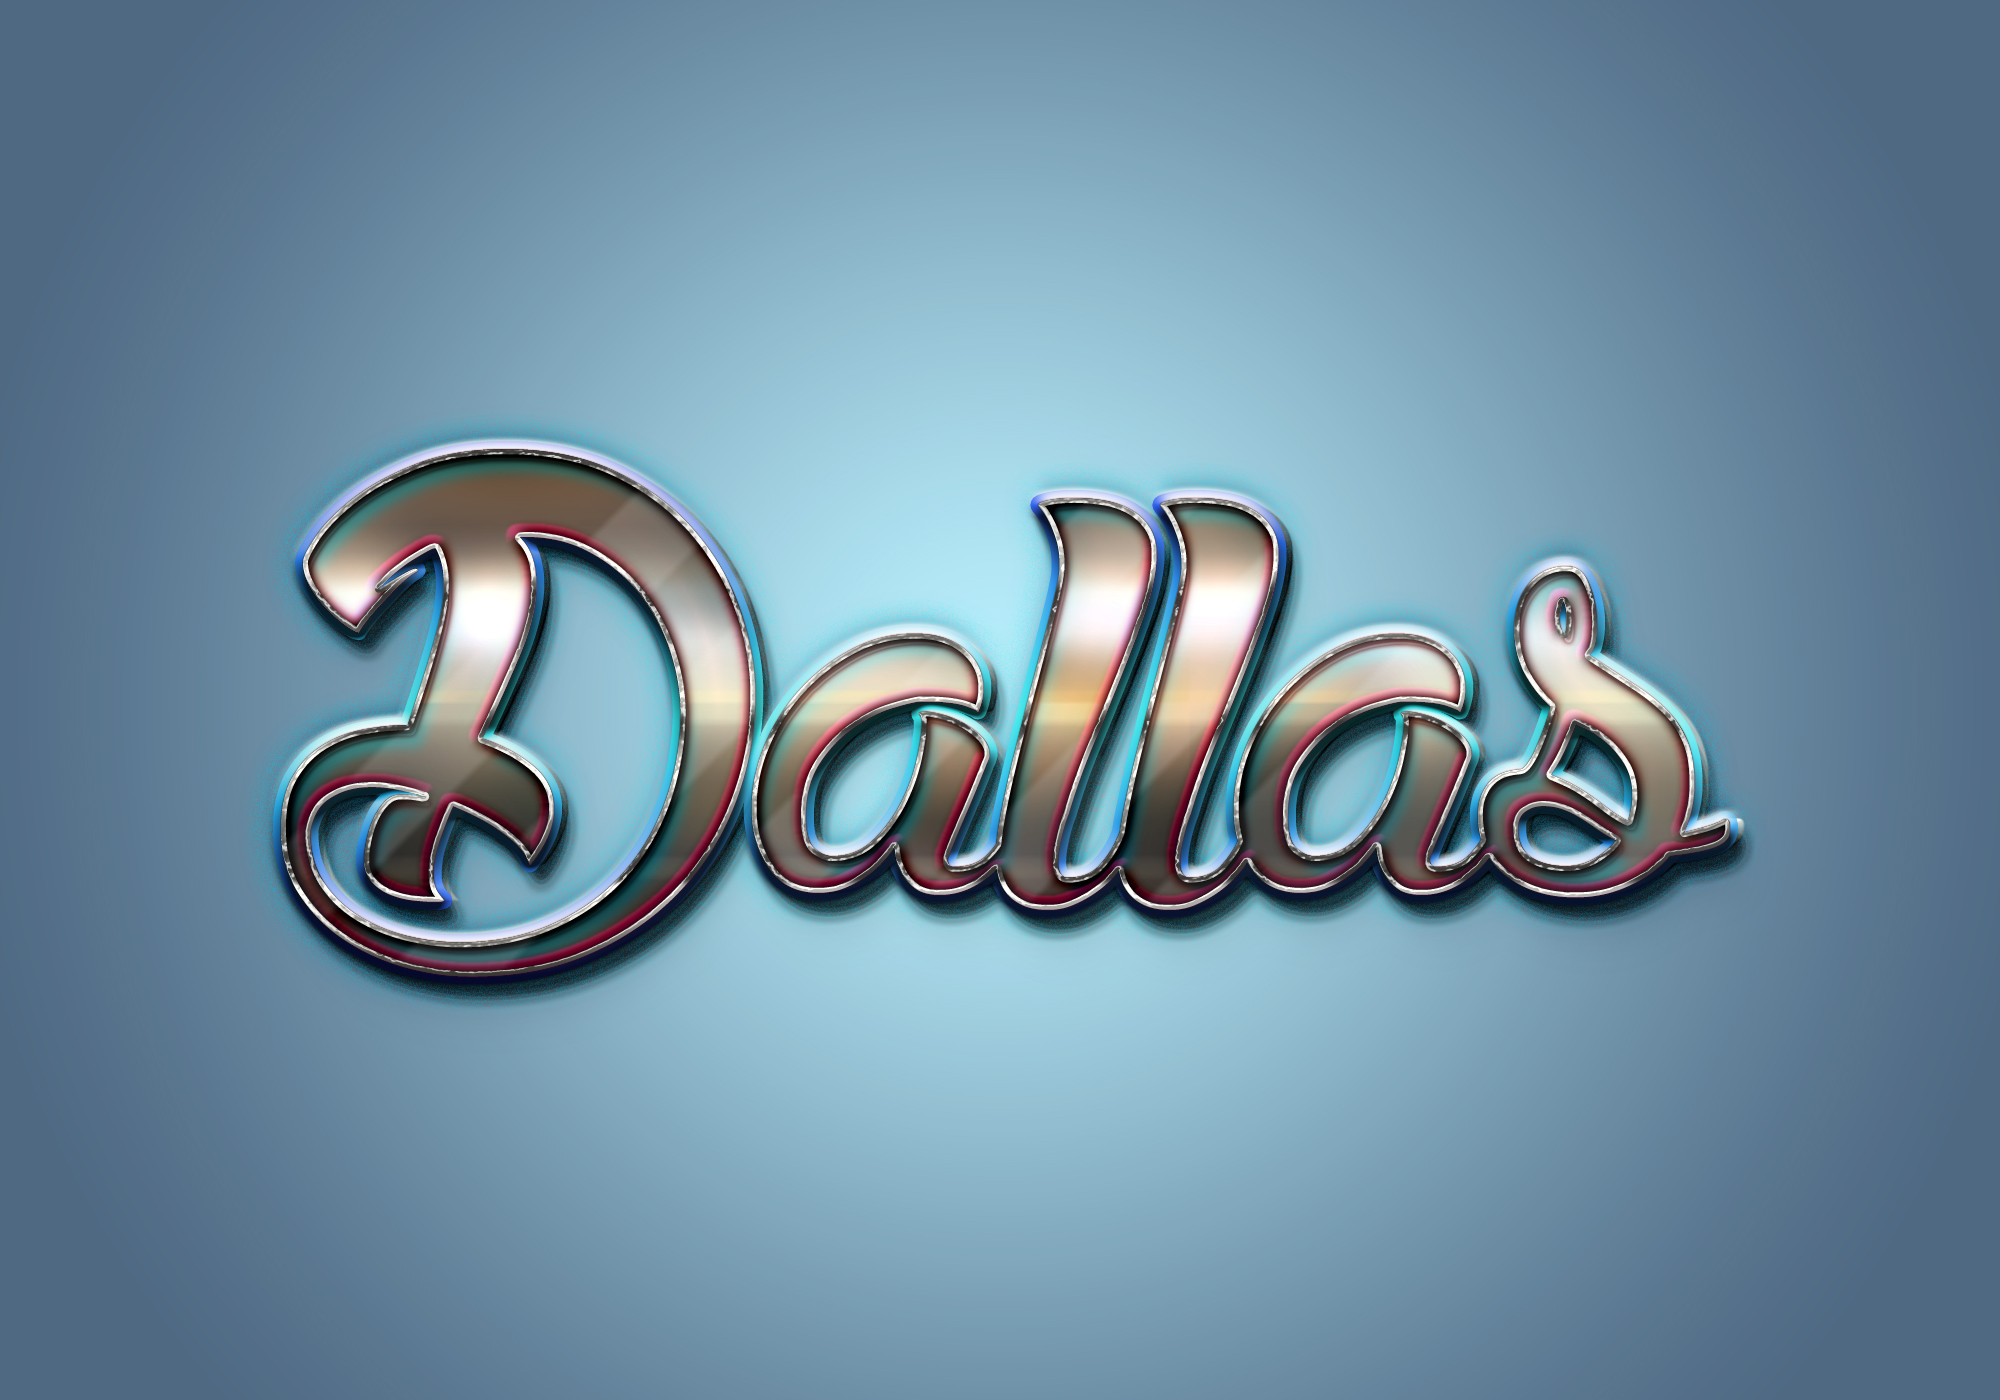 3D Text Styles V05-08-16 by nay2016 | GraphicRiver